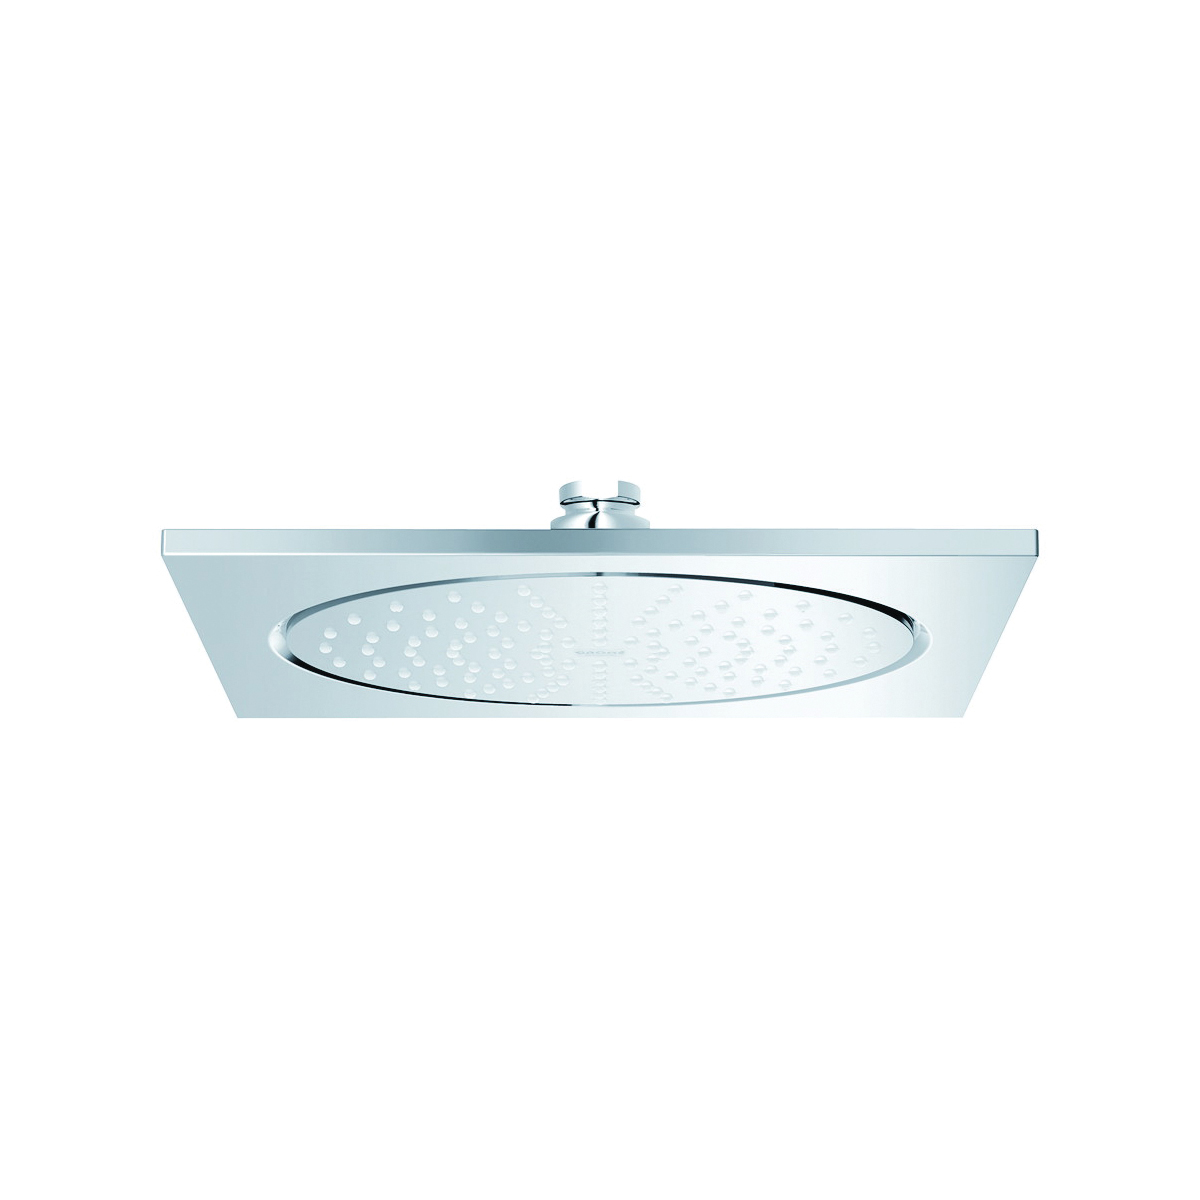 Consolidated Supply Co Grohe 27285000 Rainshower Shower Head